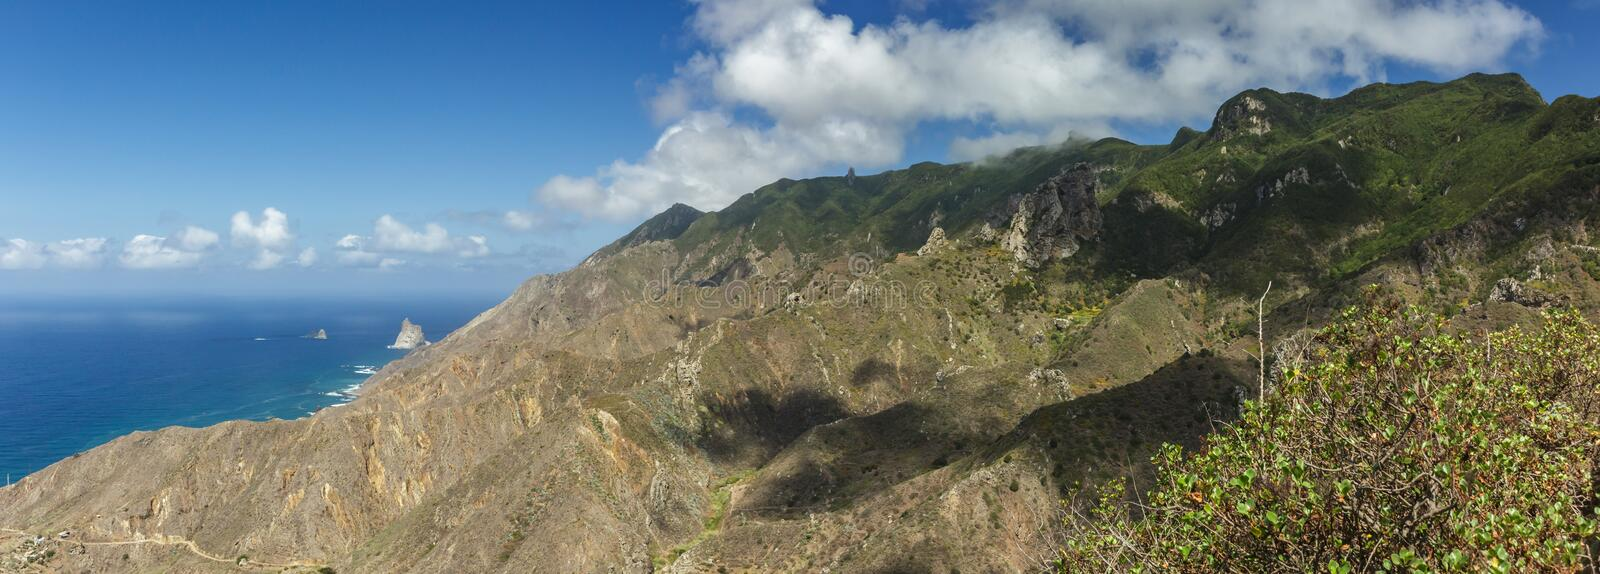 Aerial Coast view, mountain Anaga and costal village. Sunny day, clear blue sky with little fluffy white clouds. Oldest part of royalty free stock photos